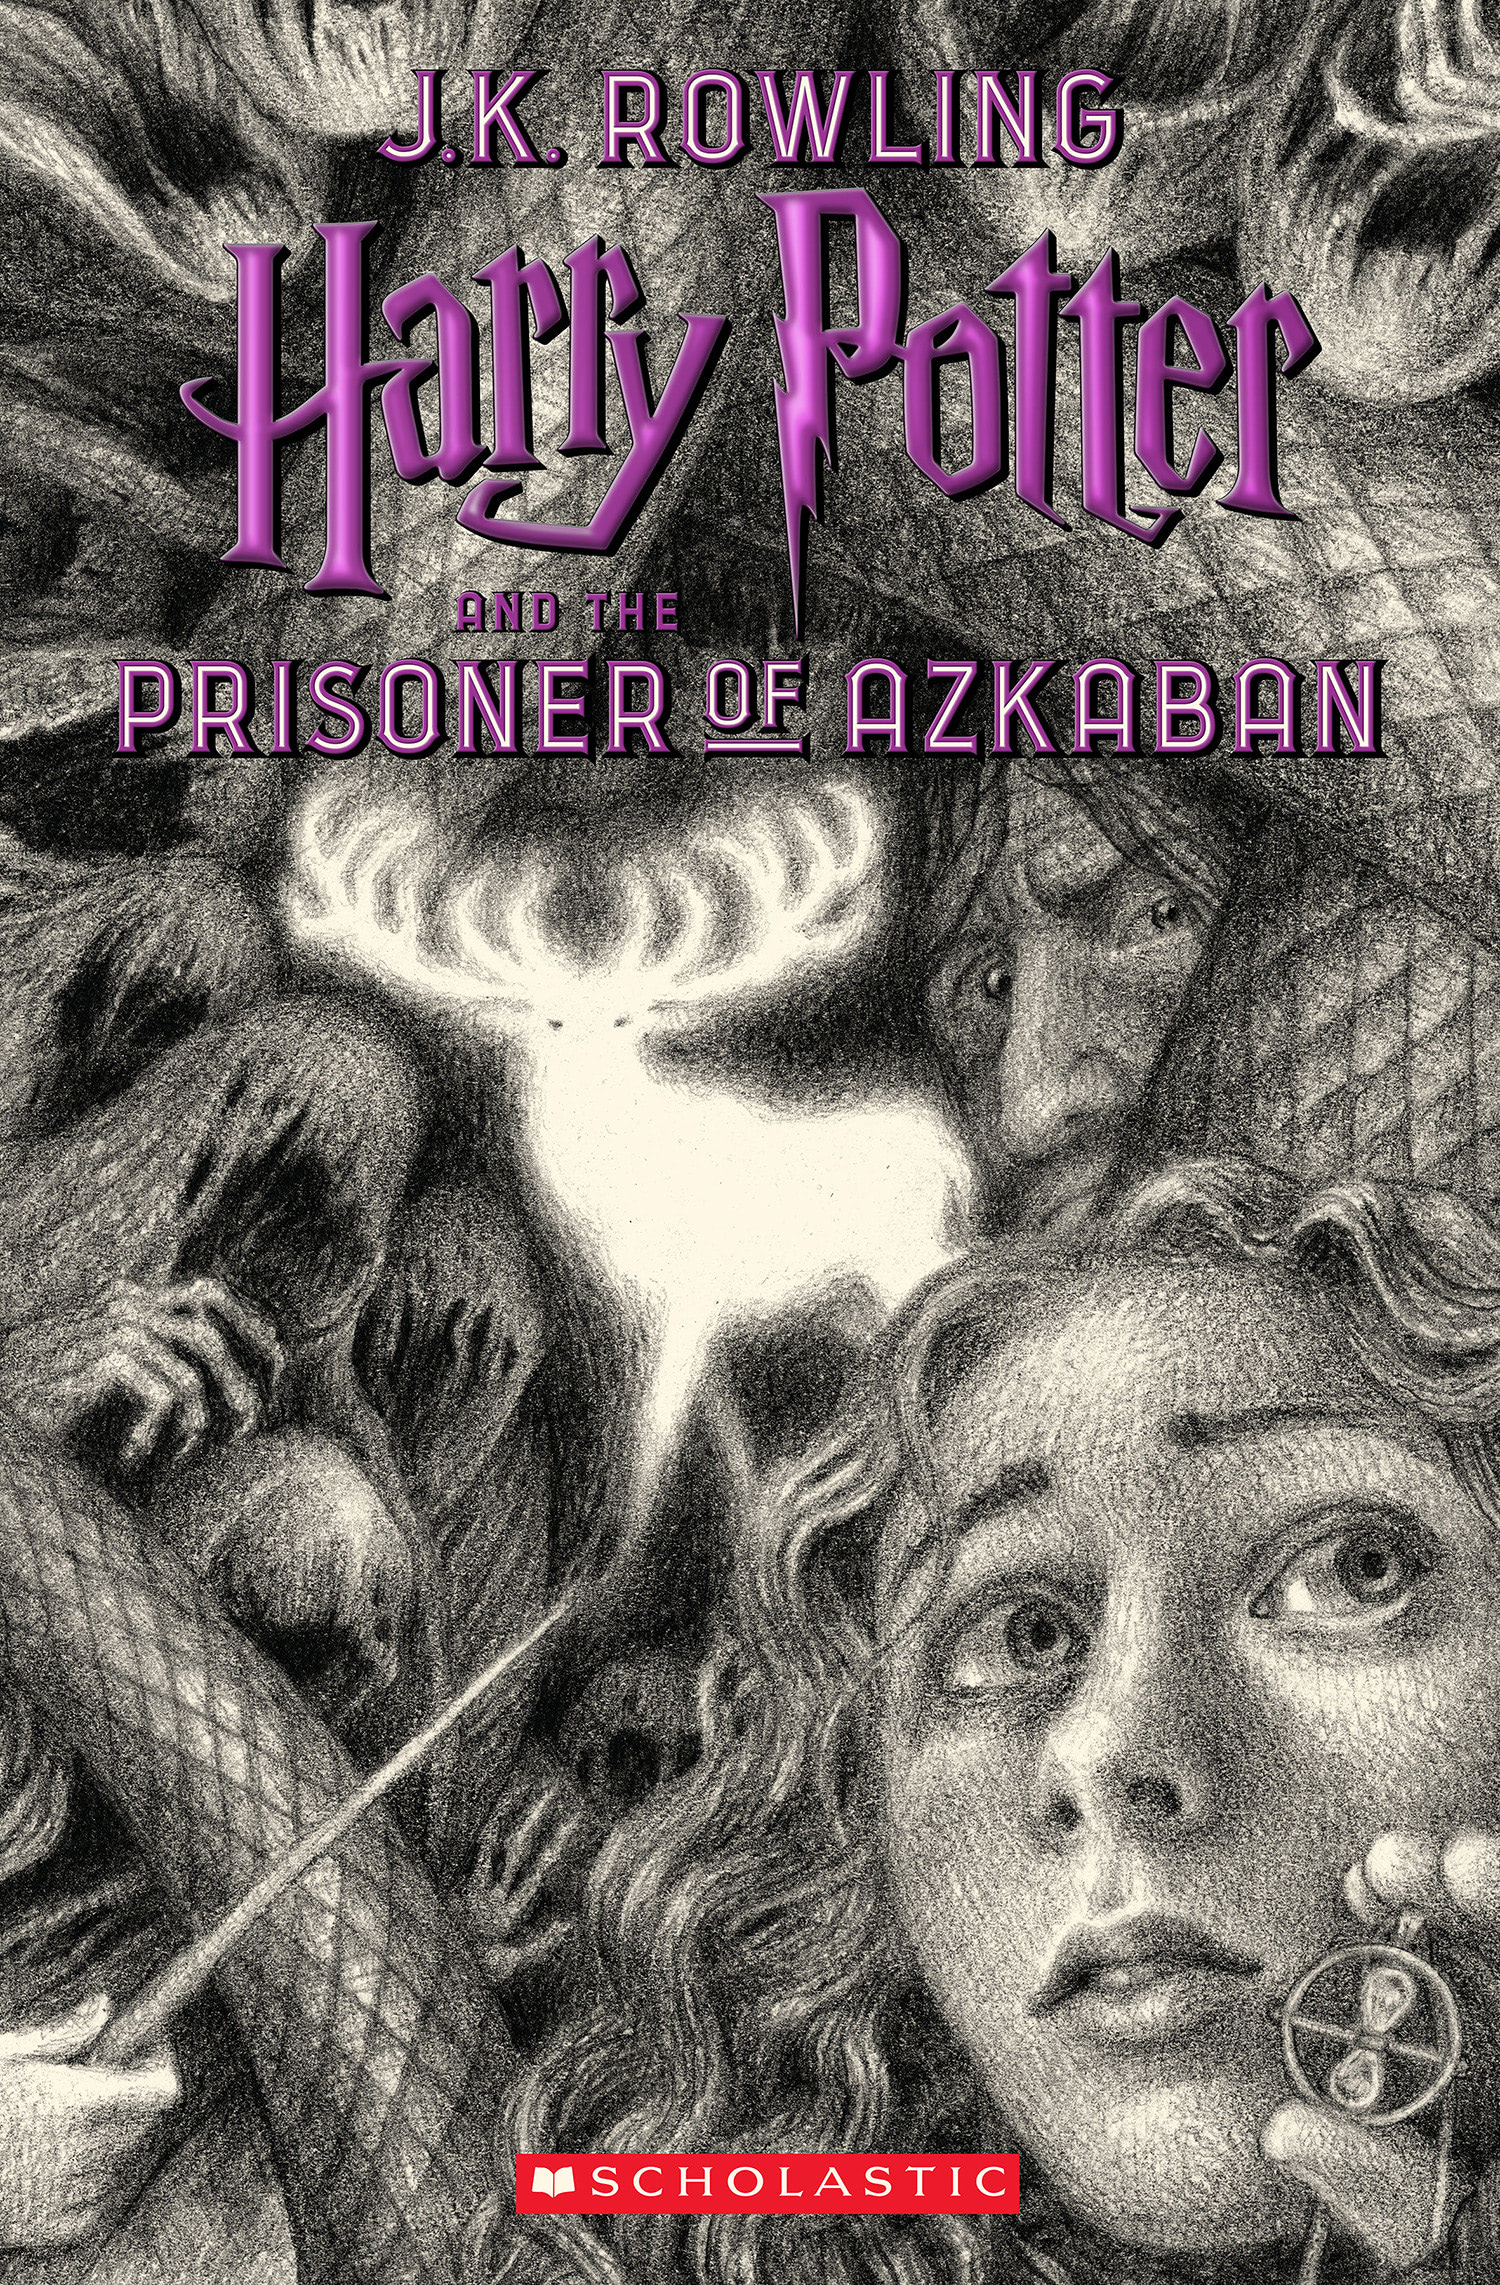 'Prisoner of Azkaban' US 20th anniversary edition